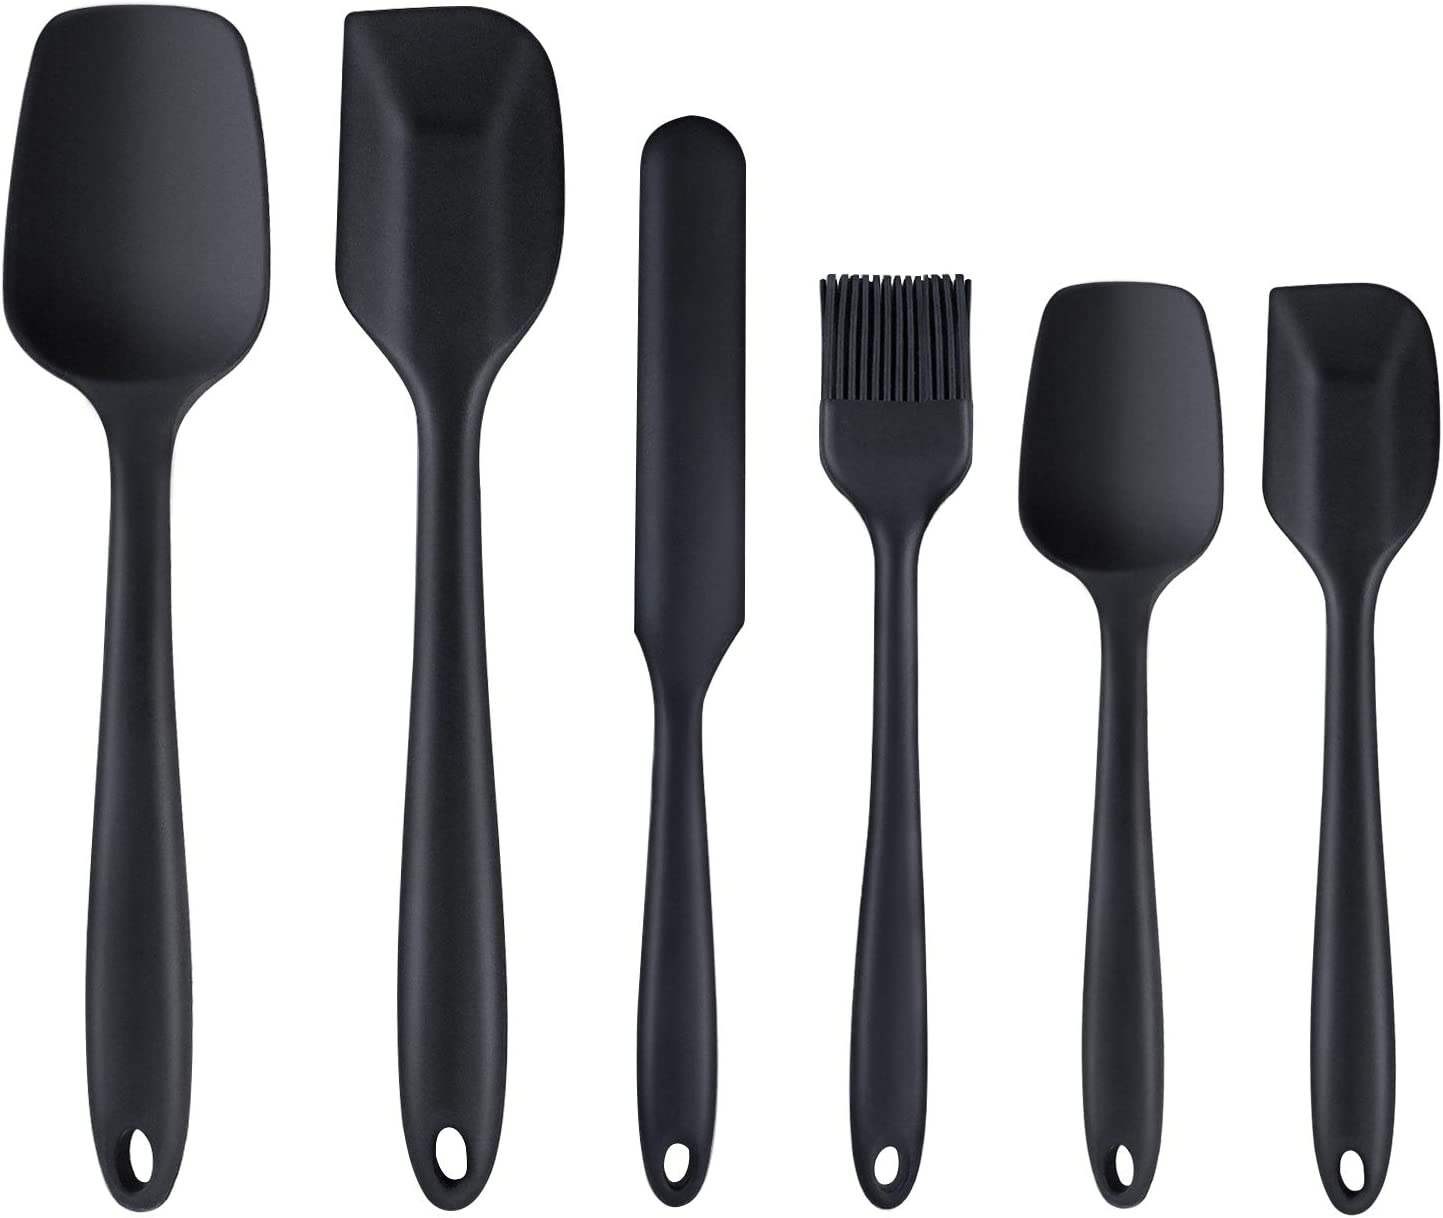 Silicone Spatula,6 piece Non-scratch Heat Resistant Rubber Spatula with Stainless Steel Core,Non Stick and Good Grips Spatulas for Cooking,Baking and Mixing(Black)